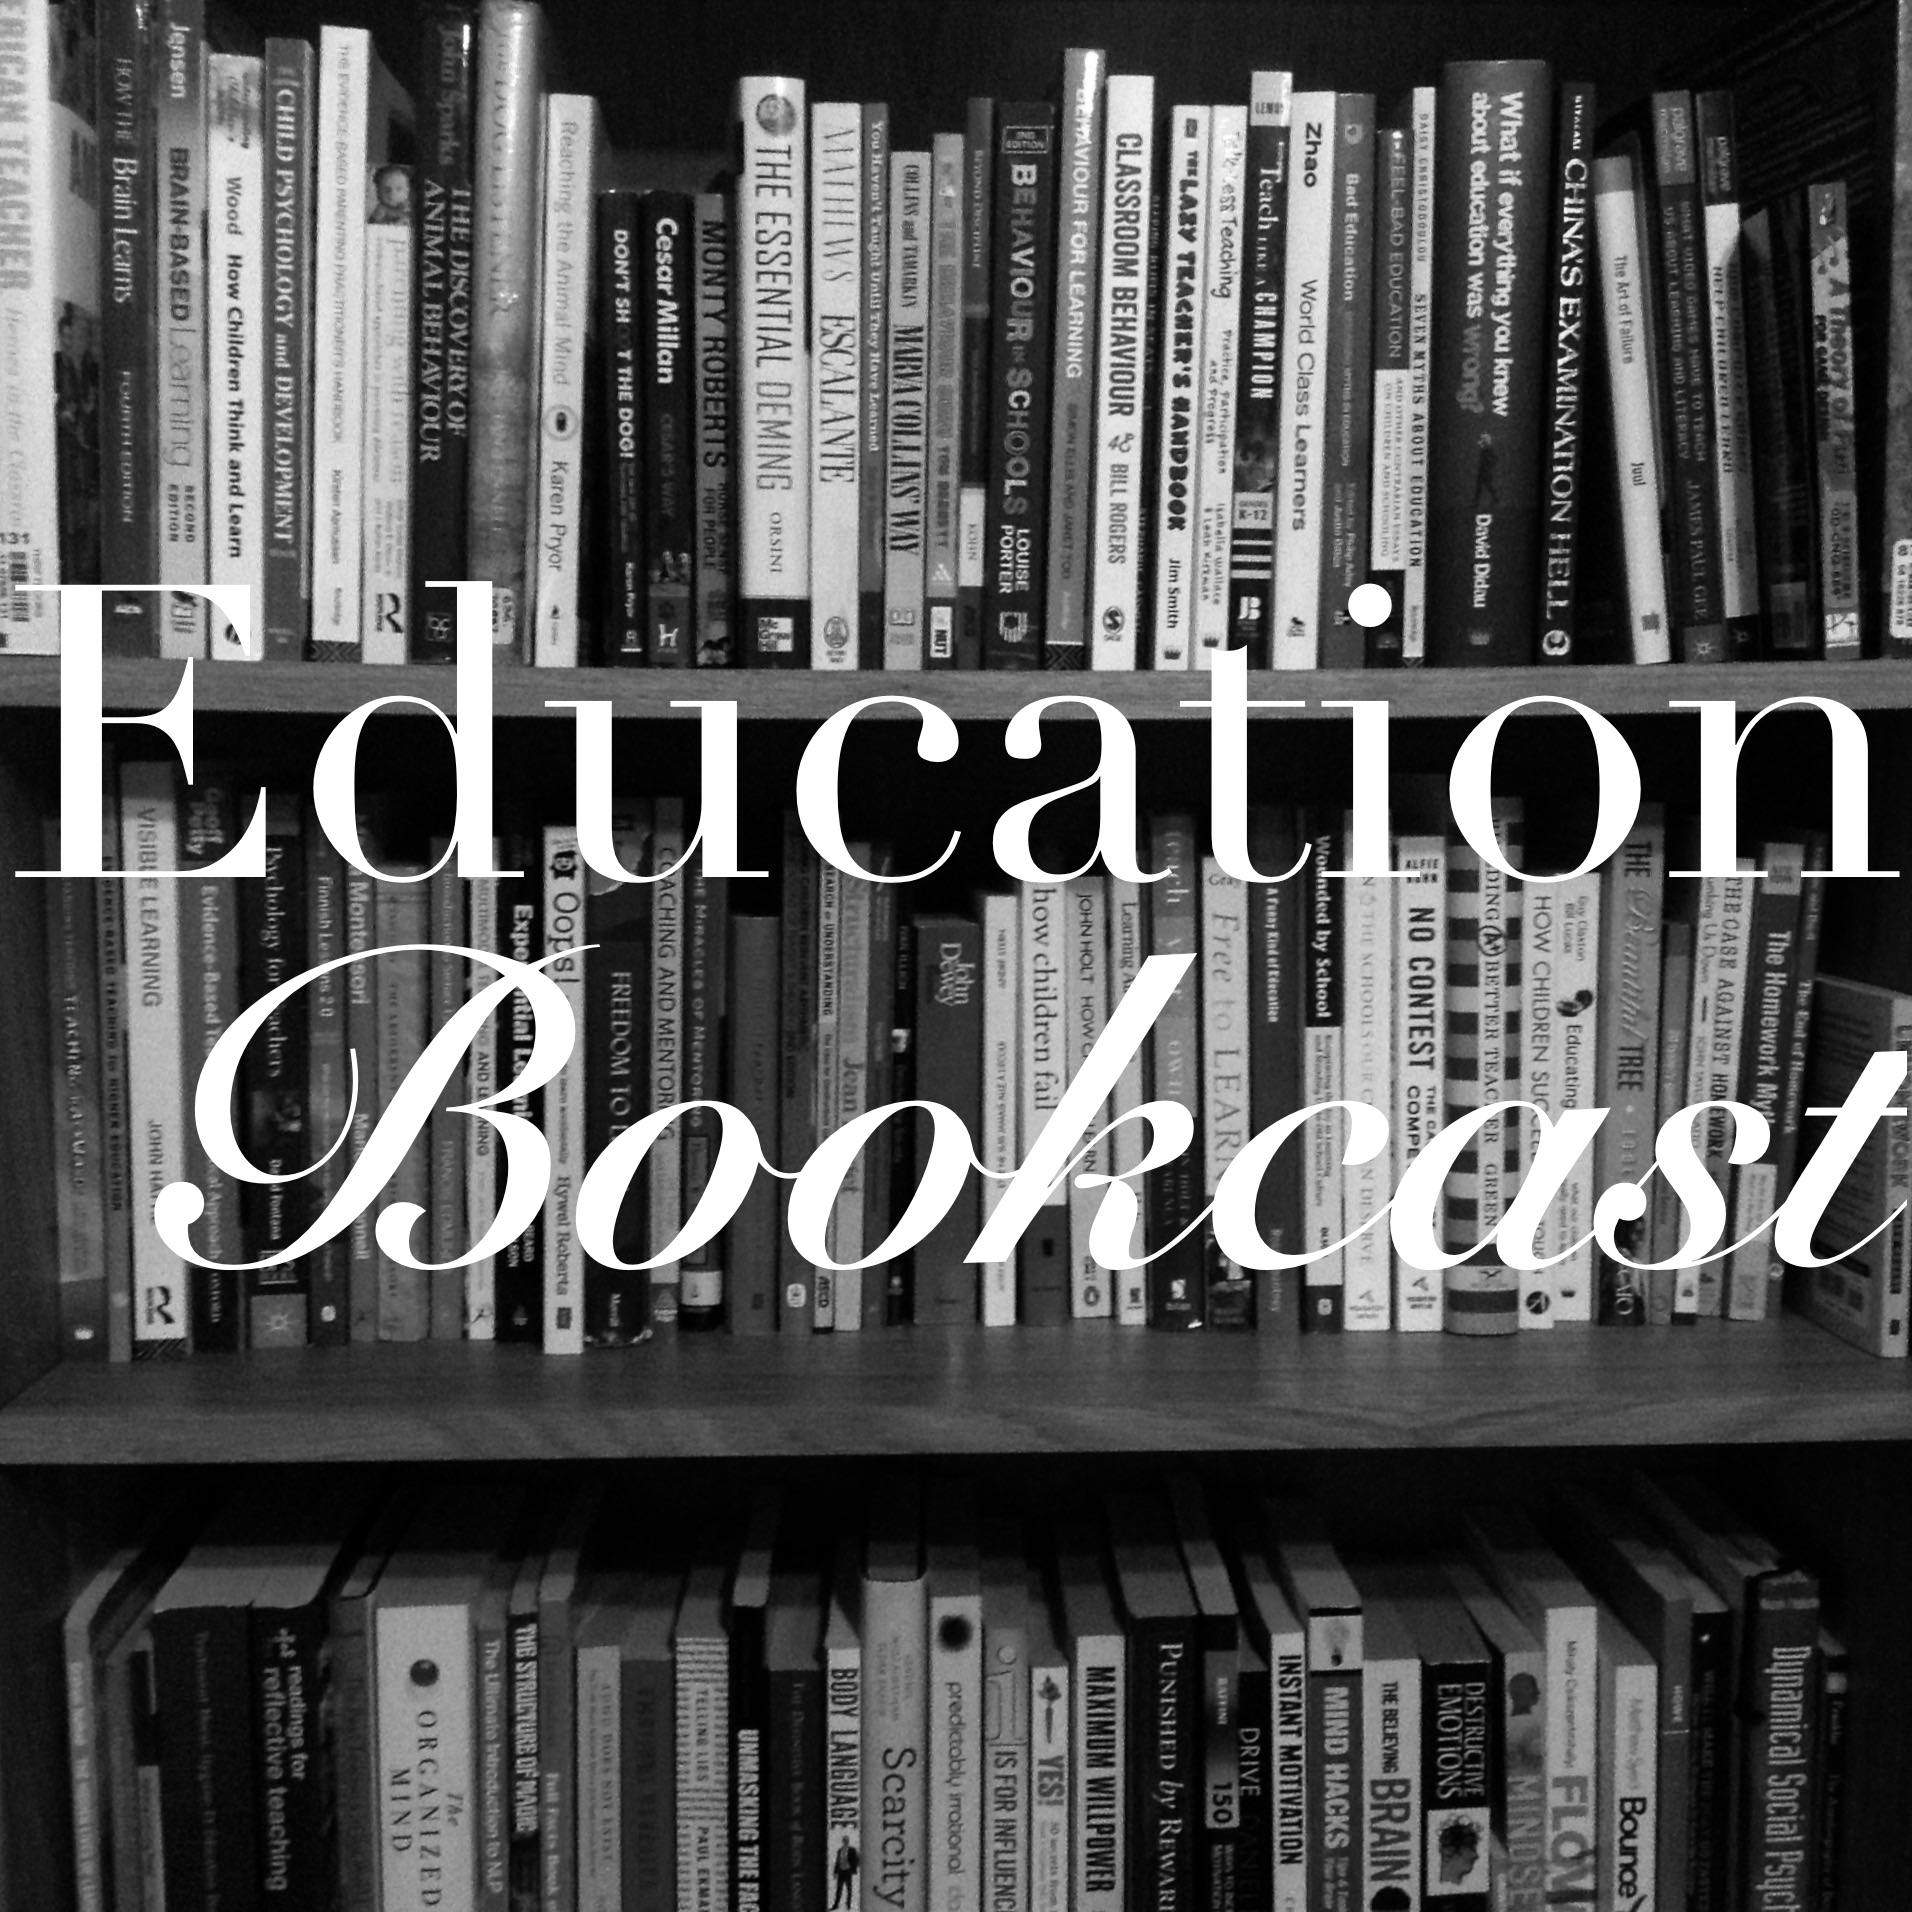 Education Bookcast